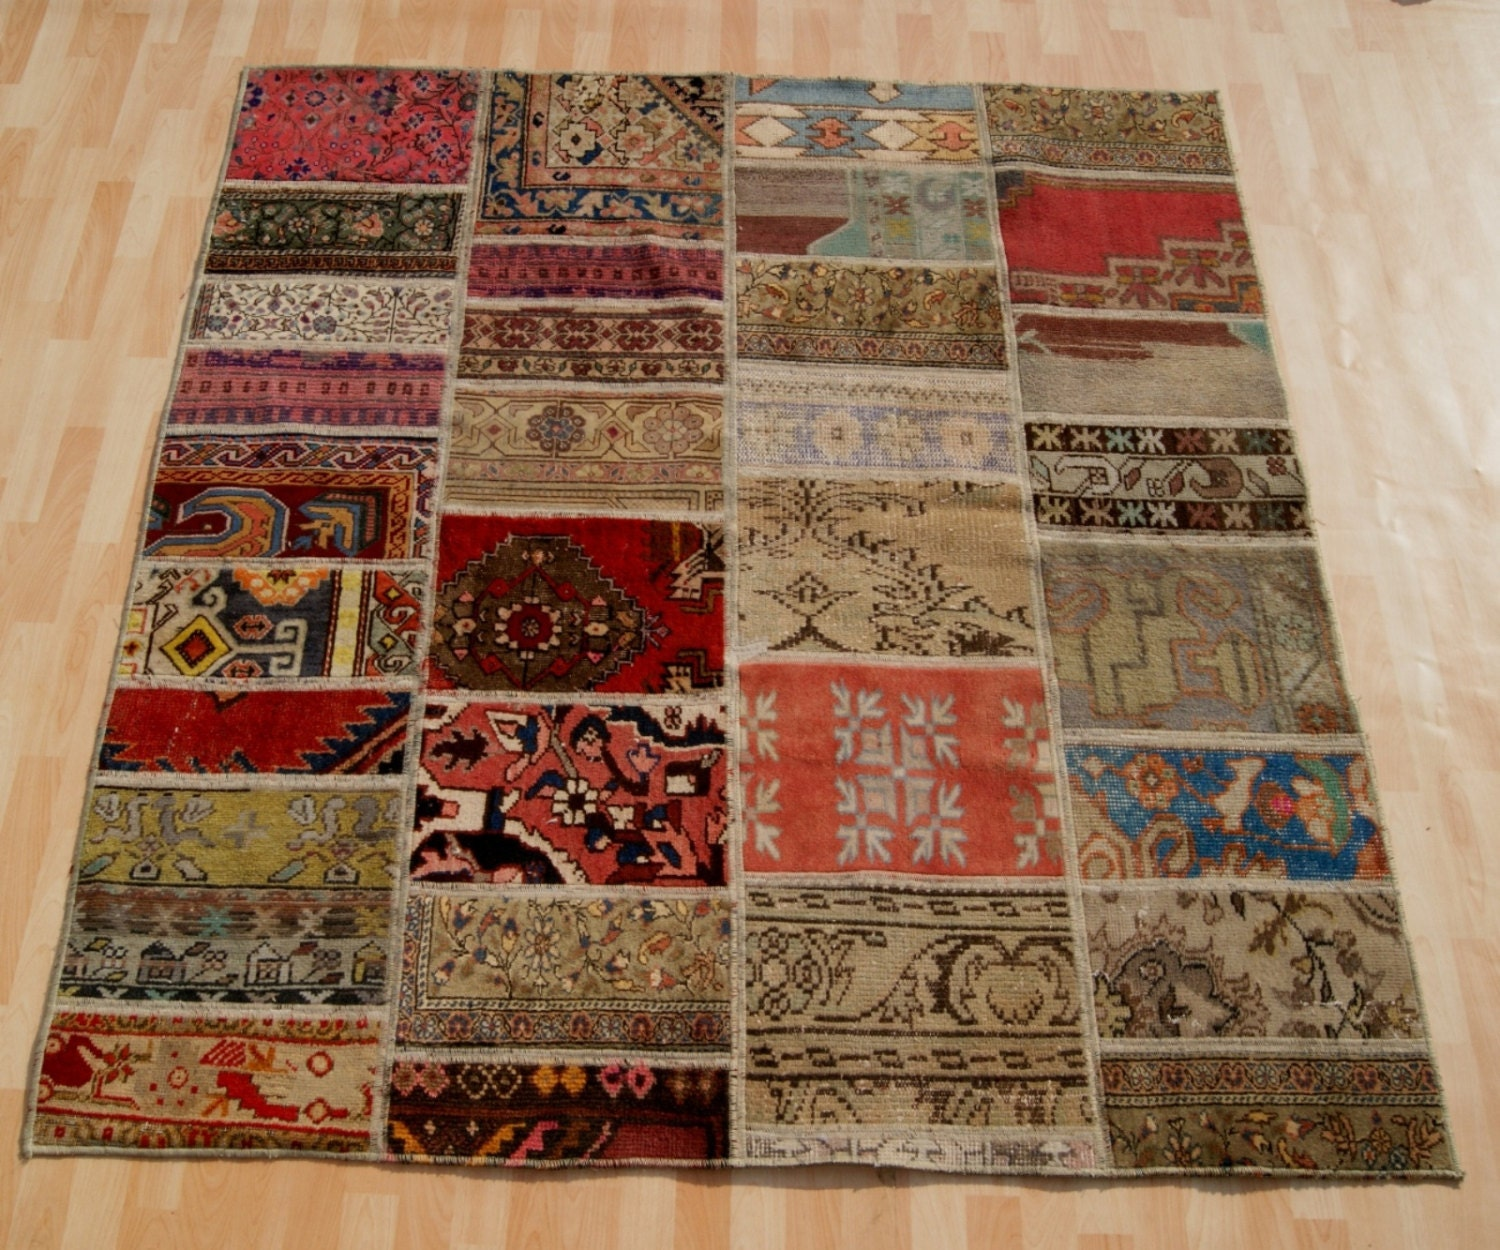 What Makes Turkish Rugs Great How You Can Read The Design Of A Turkish Rug: Home Decor Turkish Patchwork Rug Hand Knotted Wool By